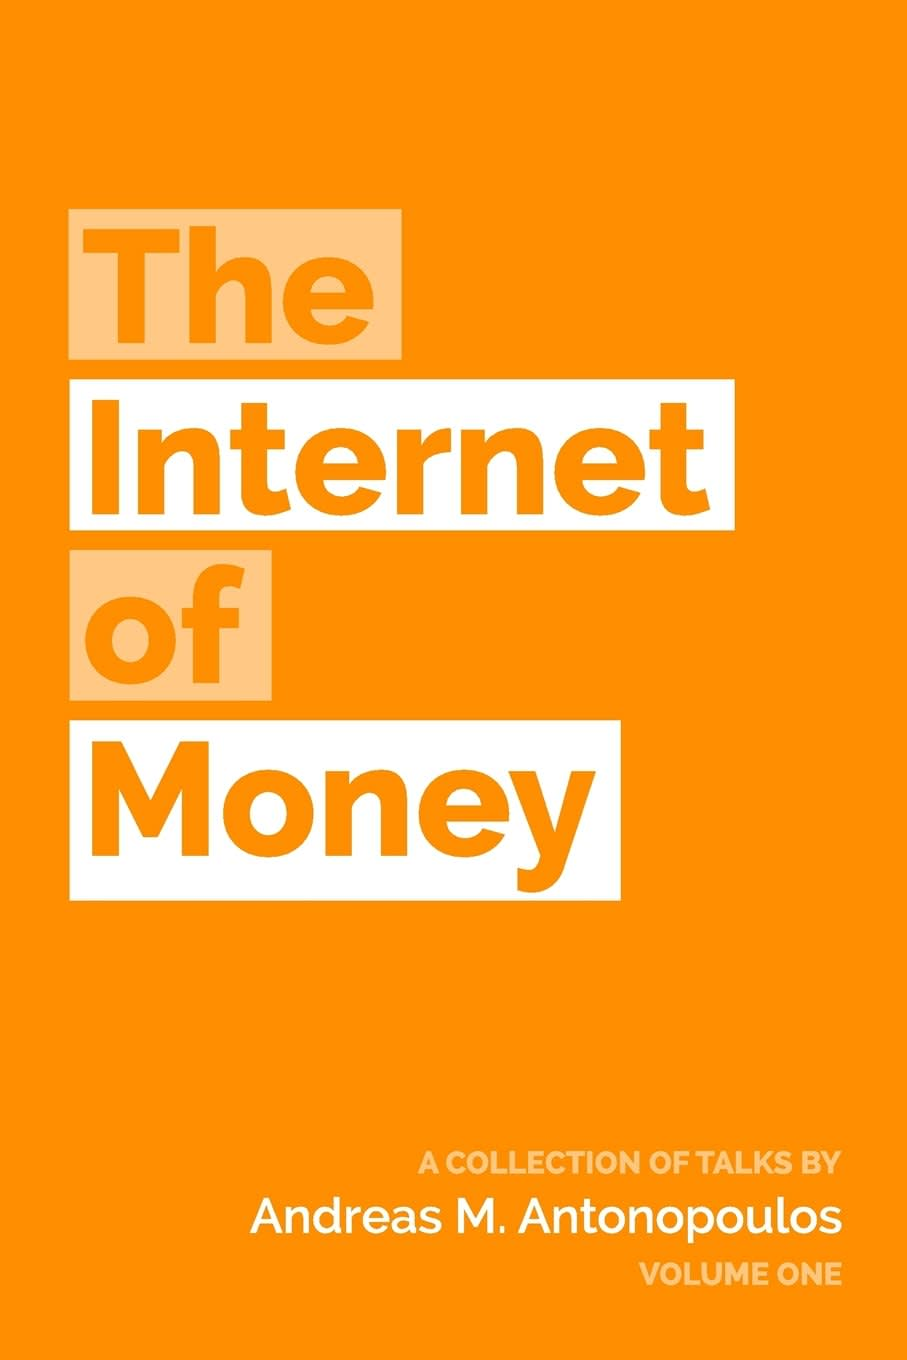 One time use: The Internet of Money cover